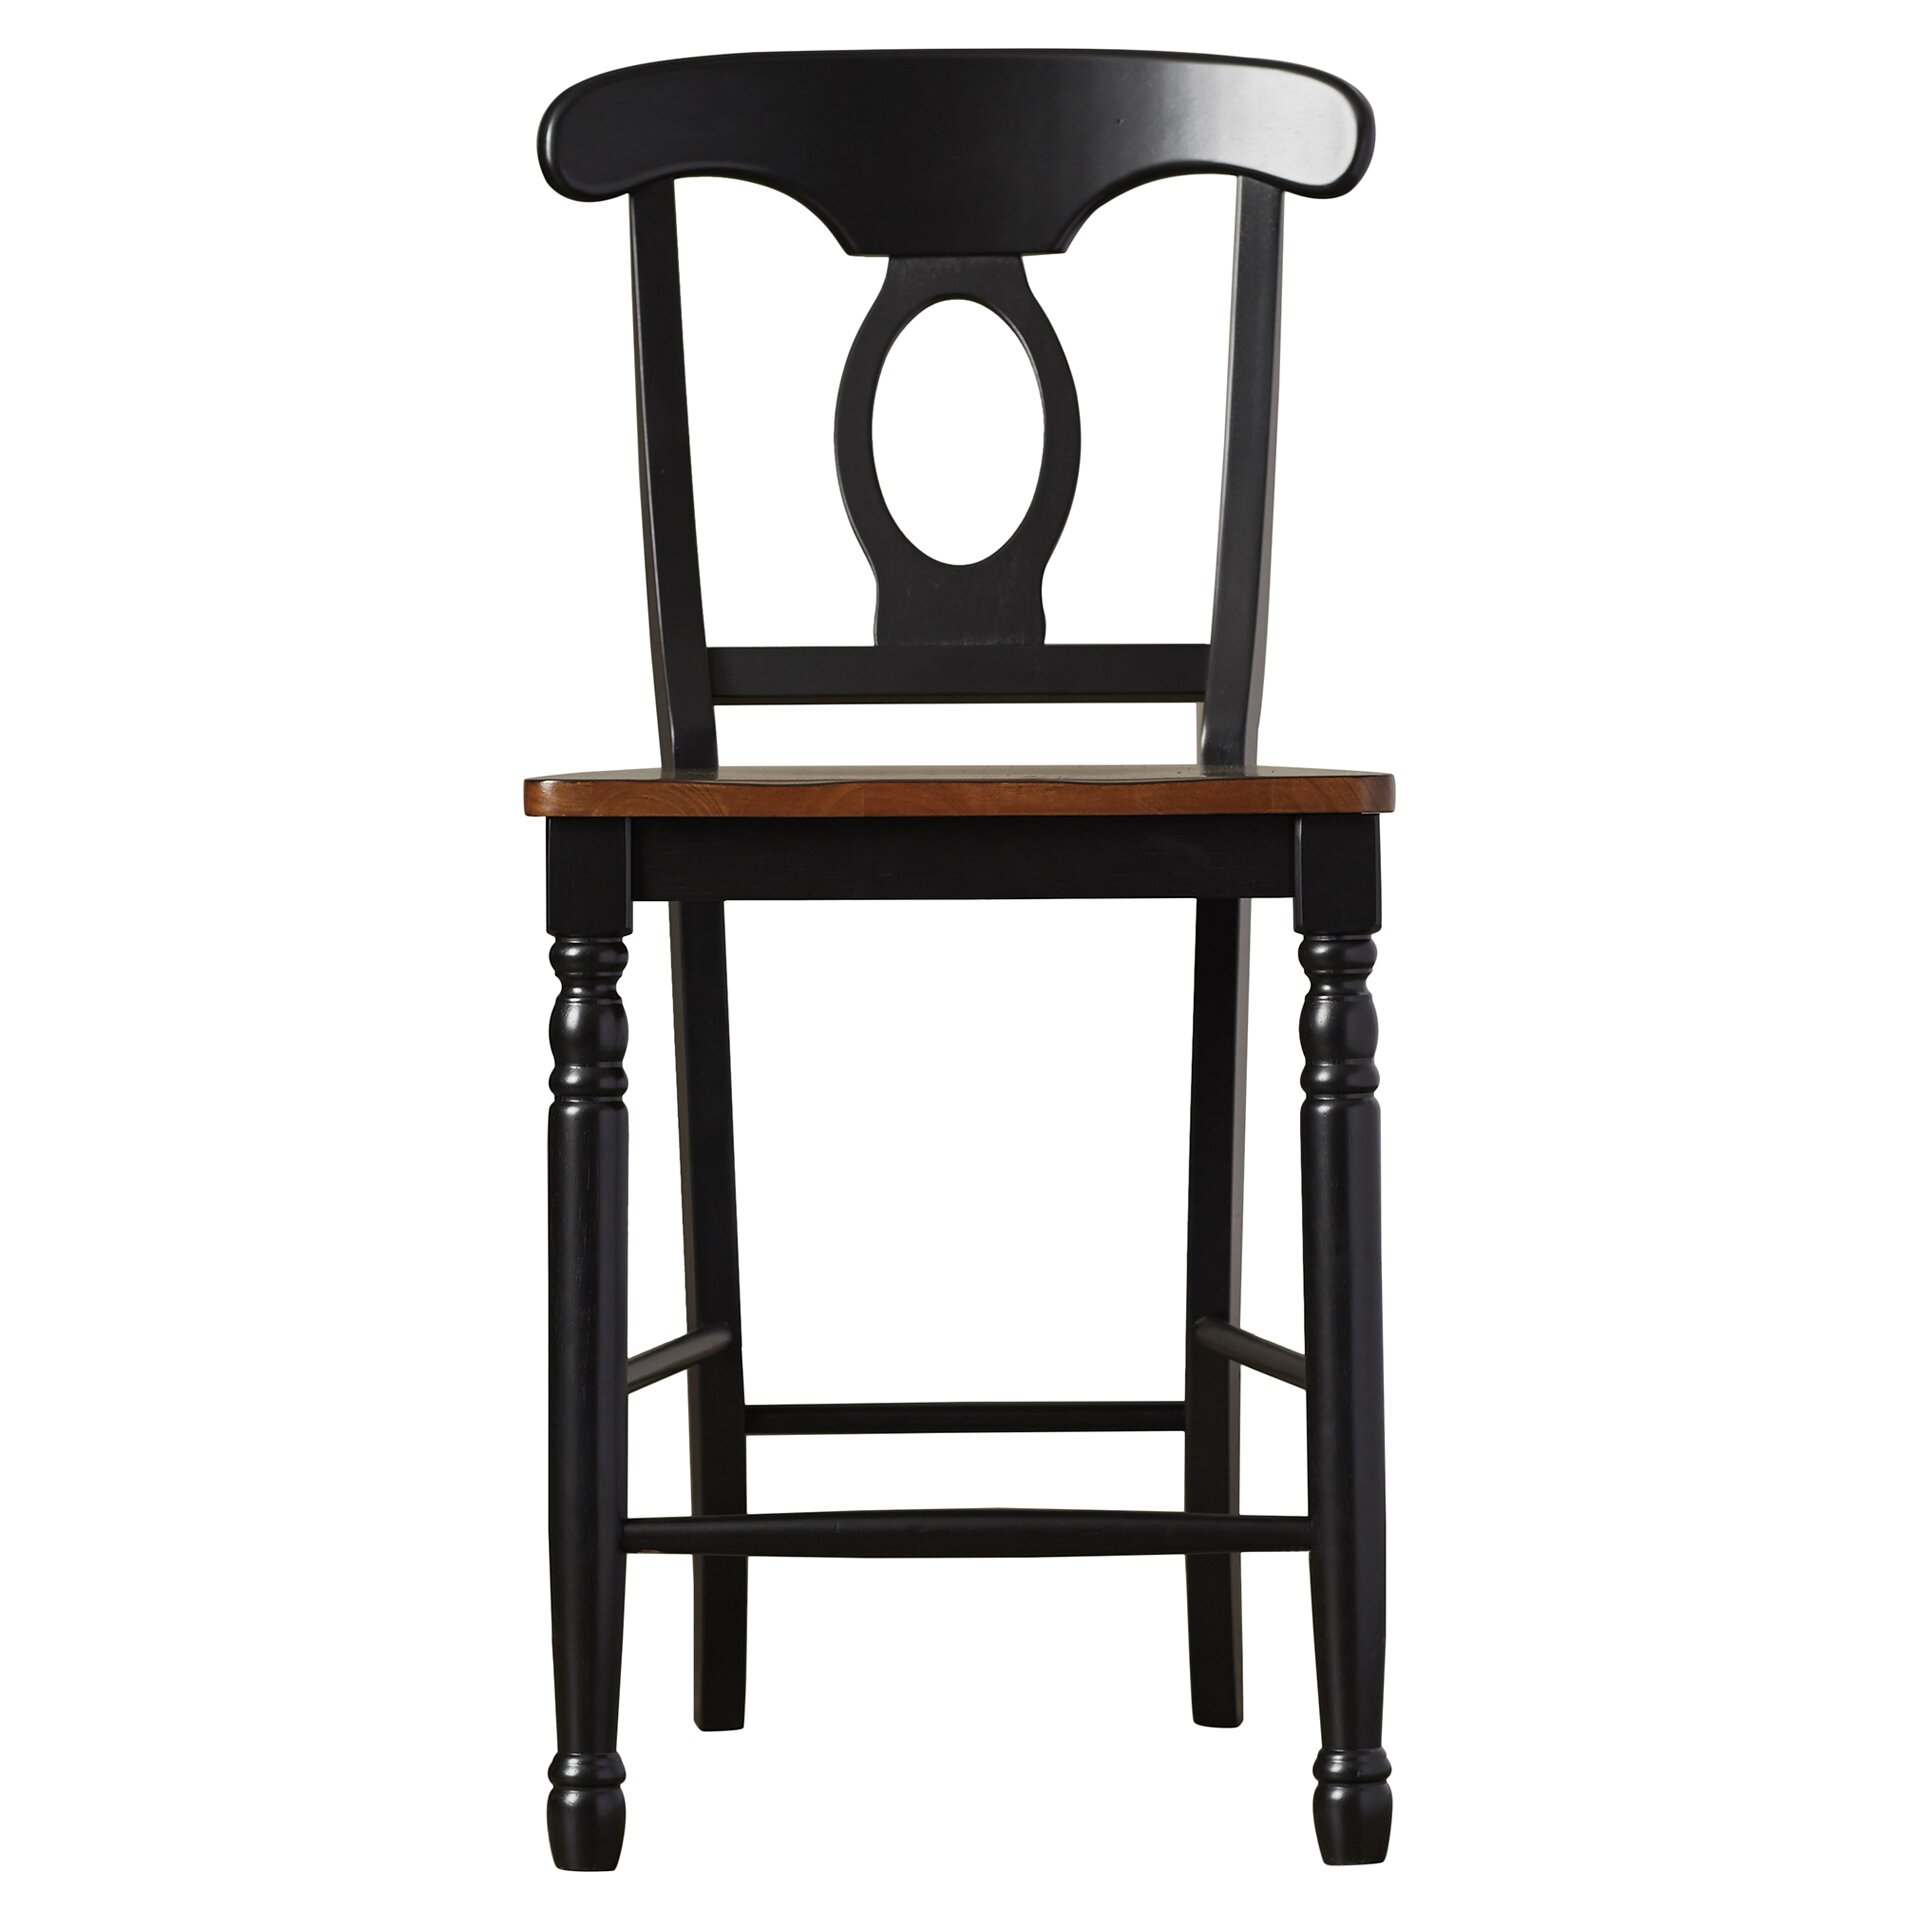 unique stock of 24 bar stool